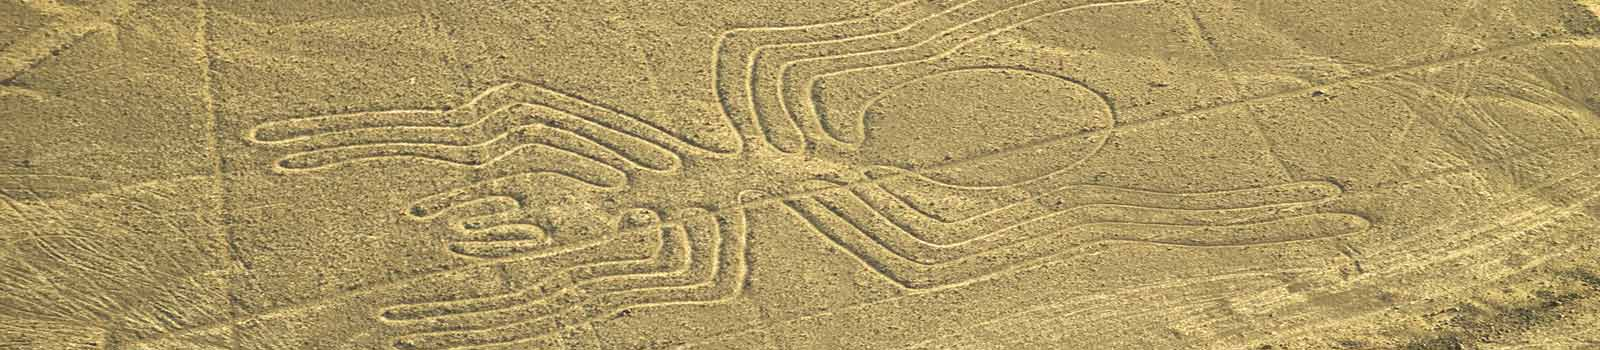 The Spider: one of the most famous Nazca Lines in the World.